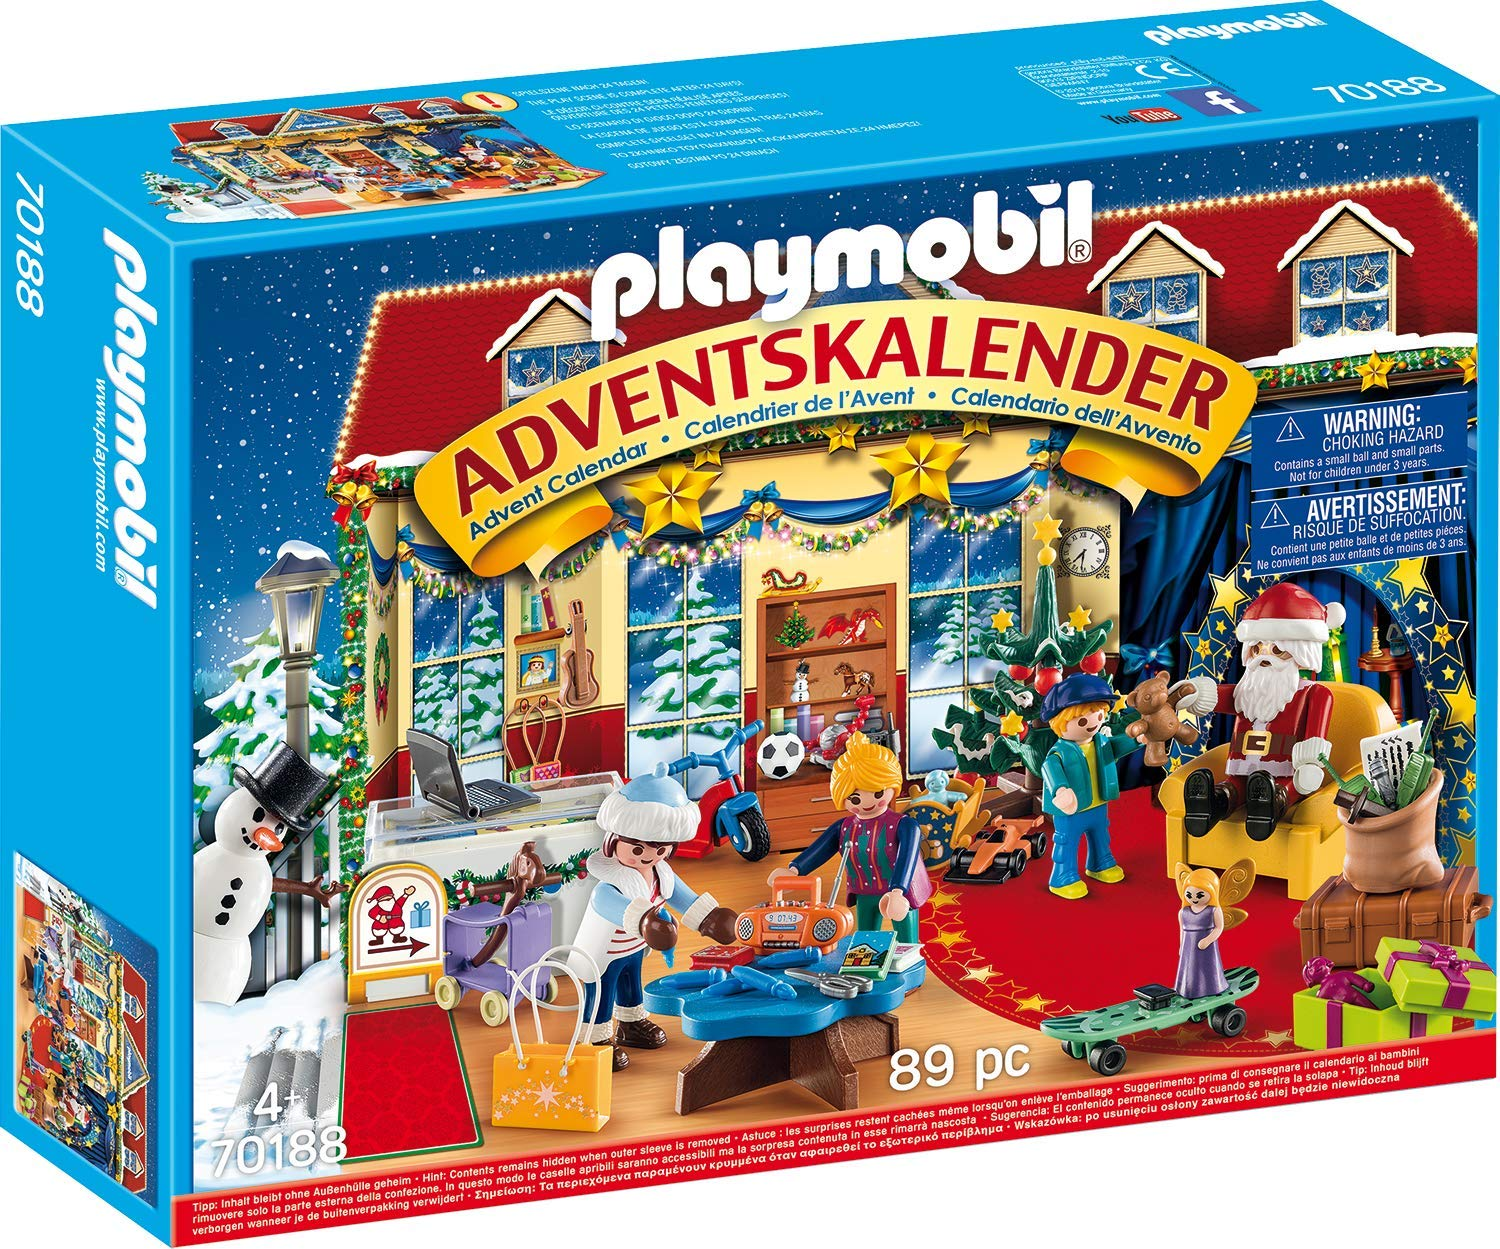 PLAYMOBIL 70188 Adventskalender voor €14,65